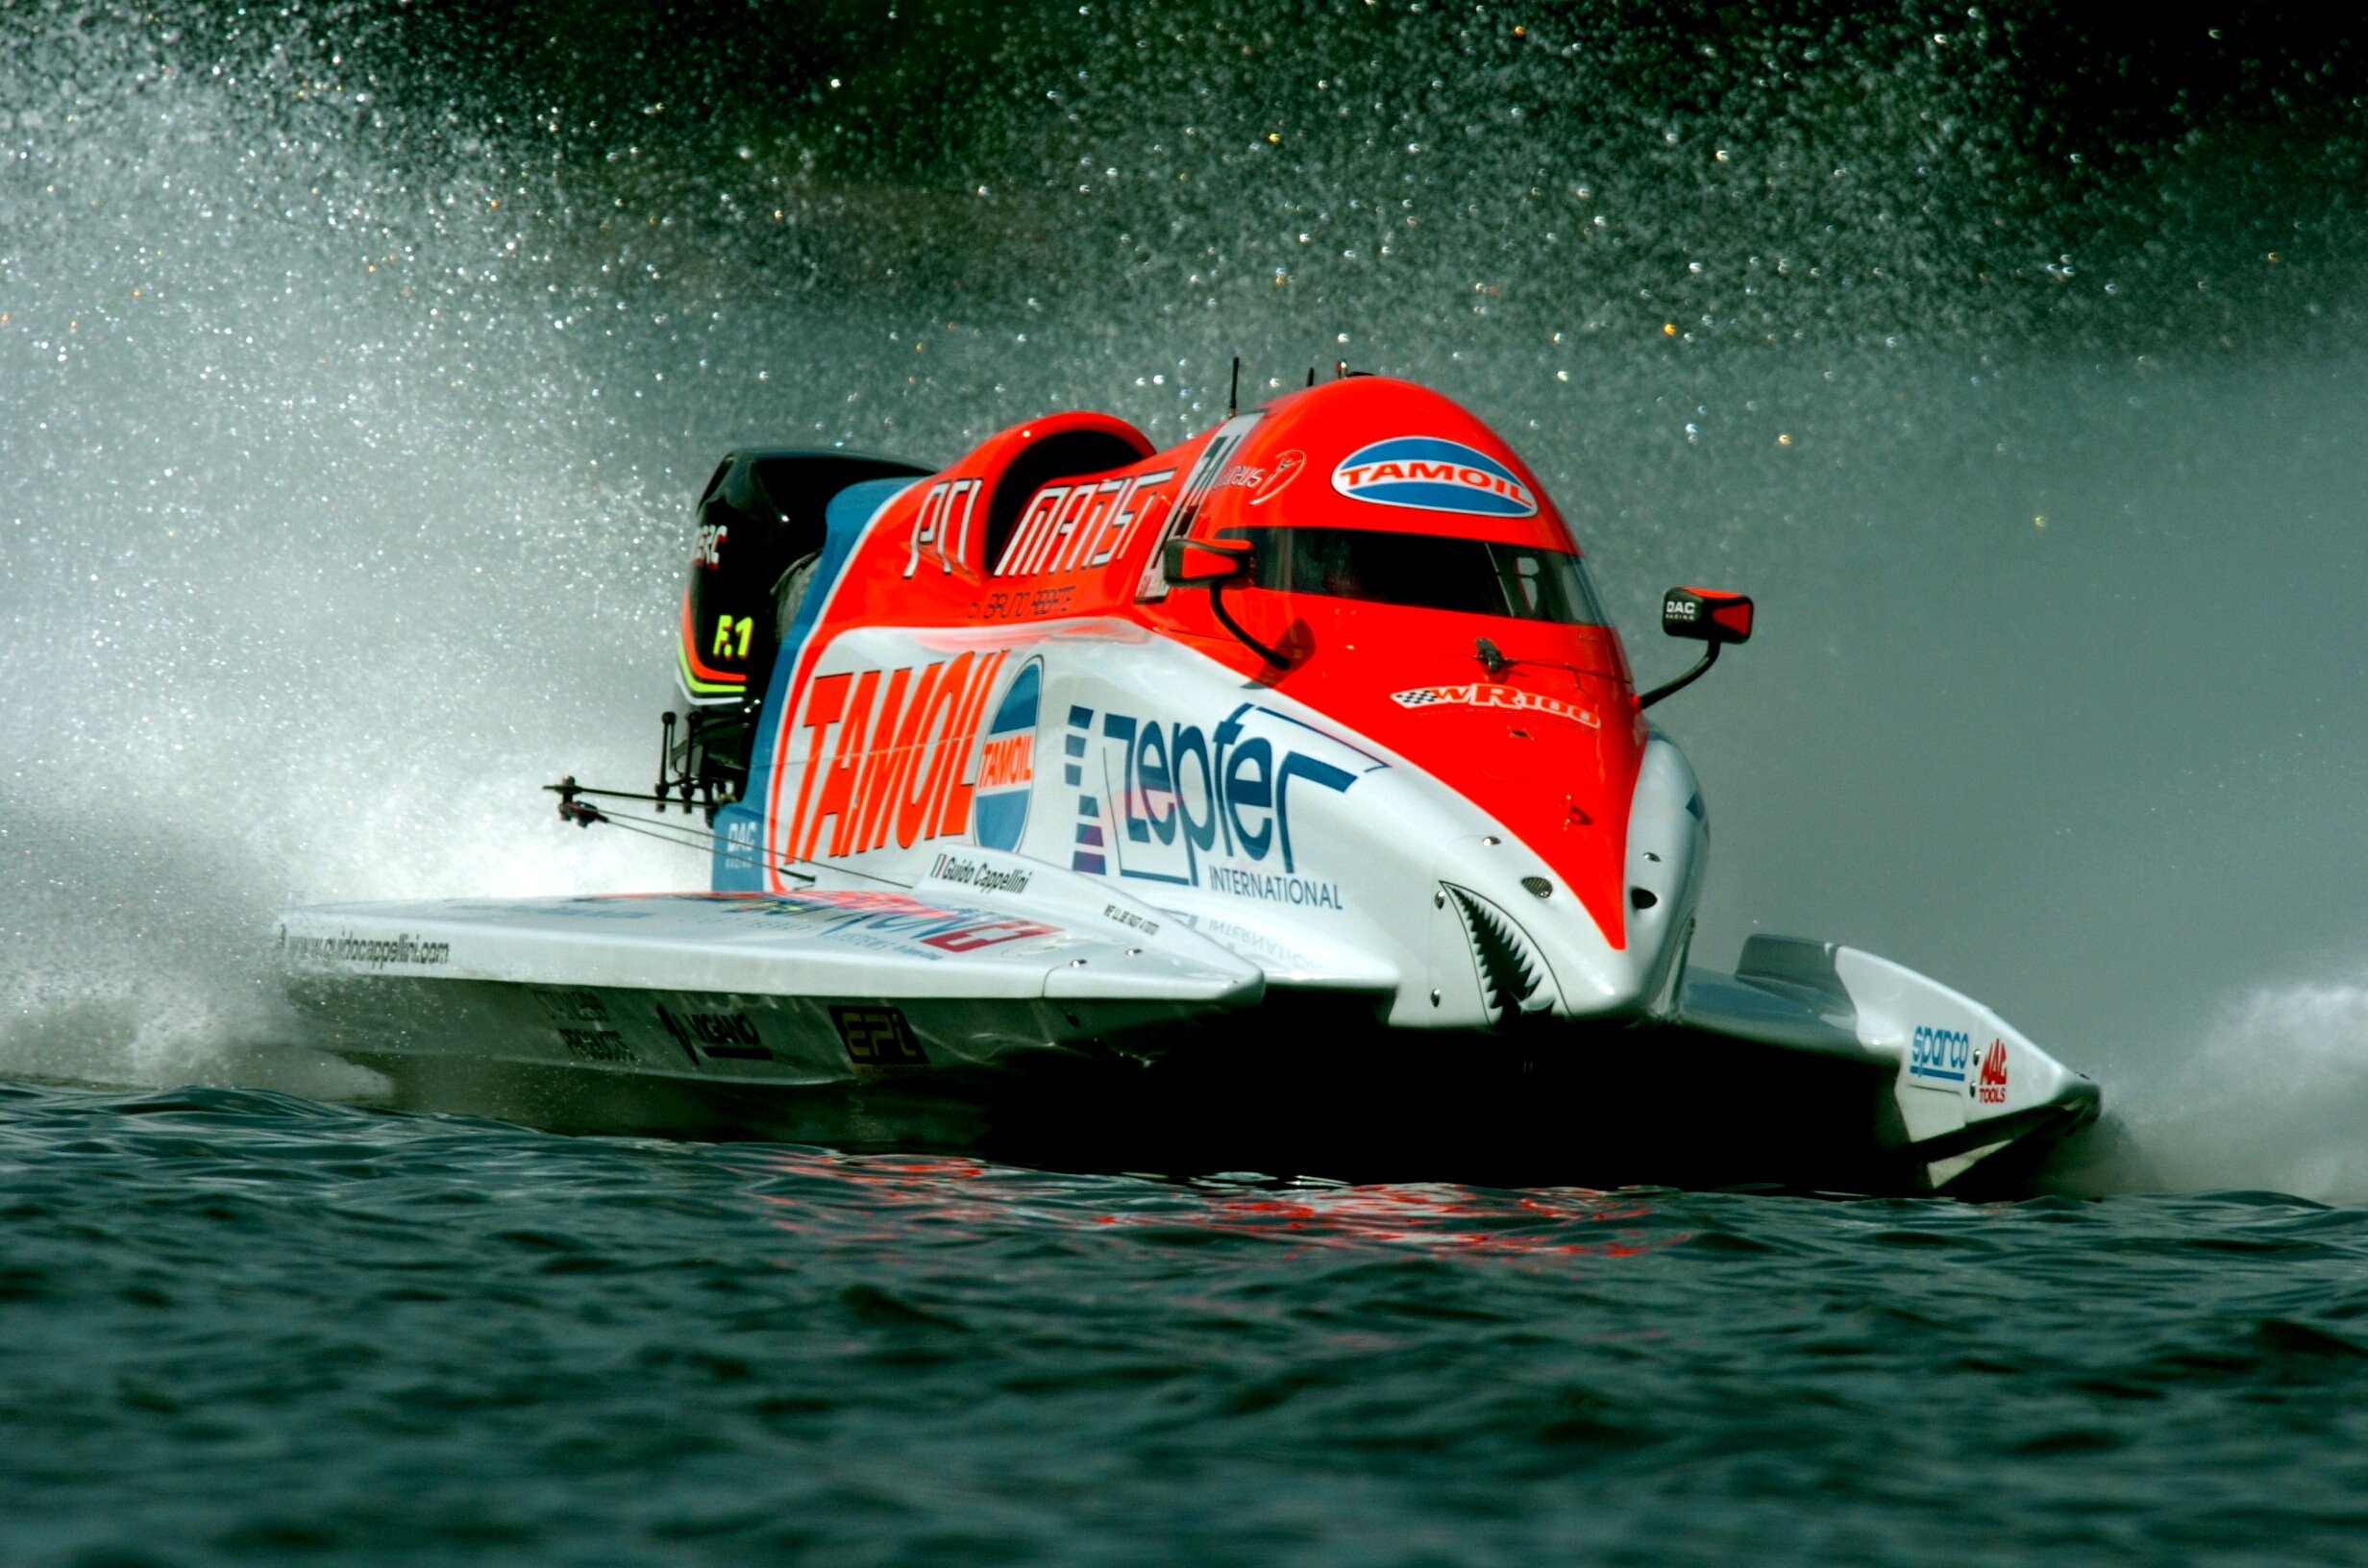 Lahti - Finland - 7 June, 2008 - Timed Trials for the Finland Grand Prix: Guido Cappellini Tamoil Team. This GP is the 3th leg of the UIM F1 Powerboat World Championship 2008. Picture by Vittorio Ubertone/Idea Marketing.